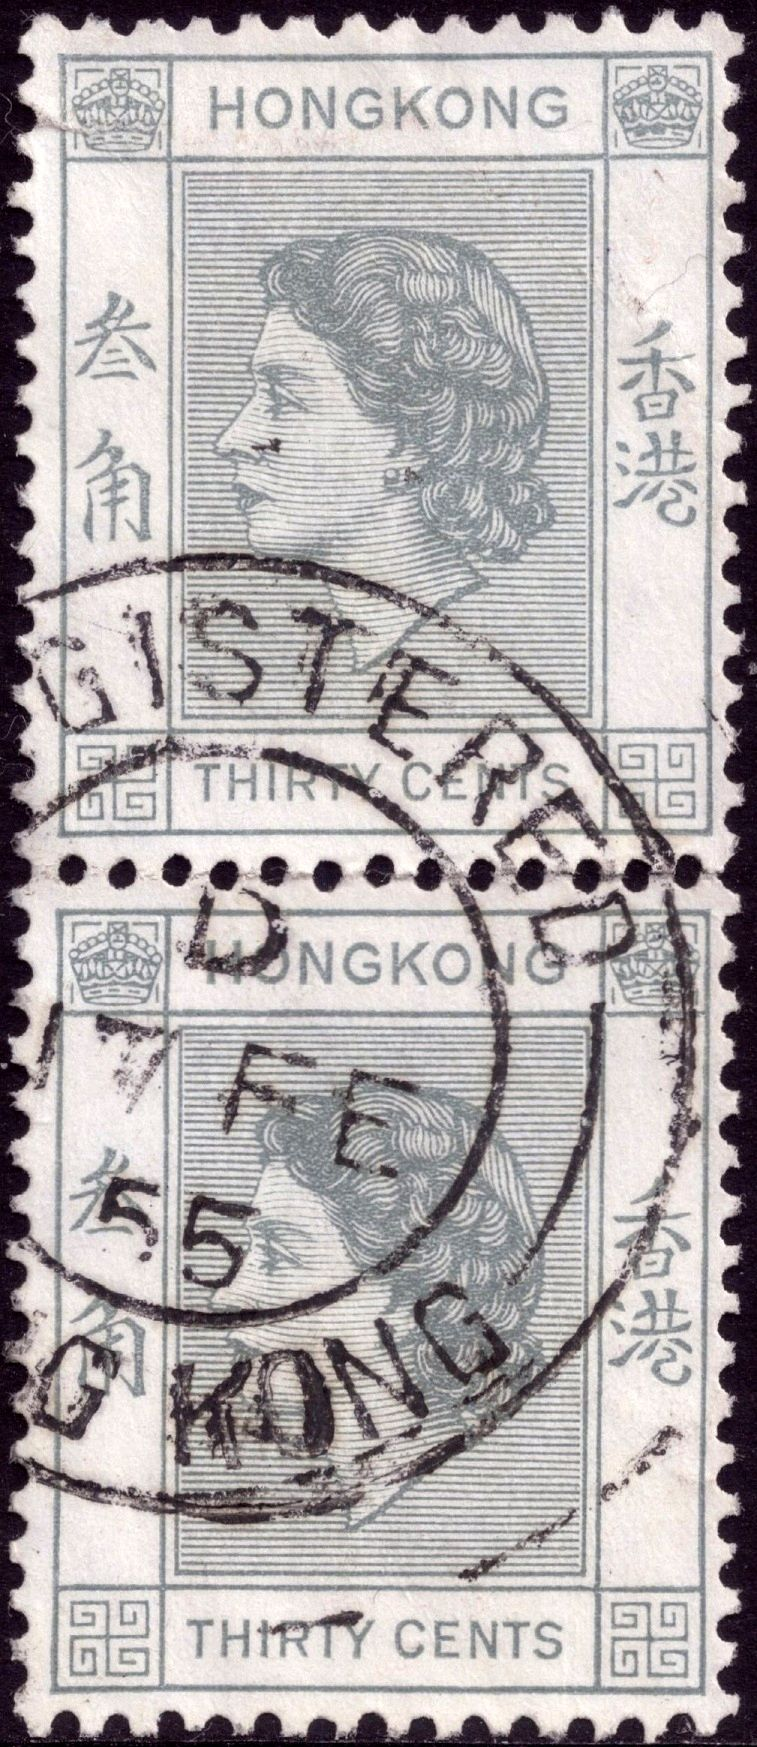 1954-62 hong kong 30c queen elizabeth ii with joined jewels variety.jpg